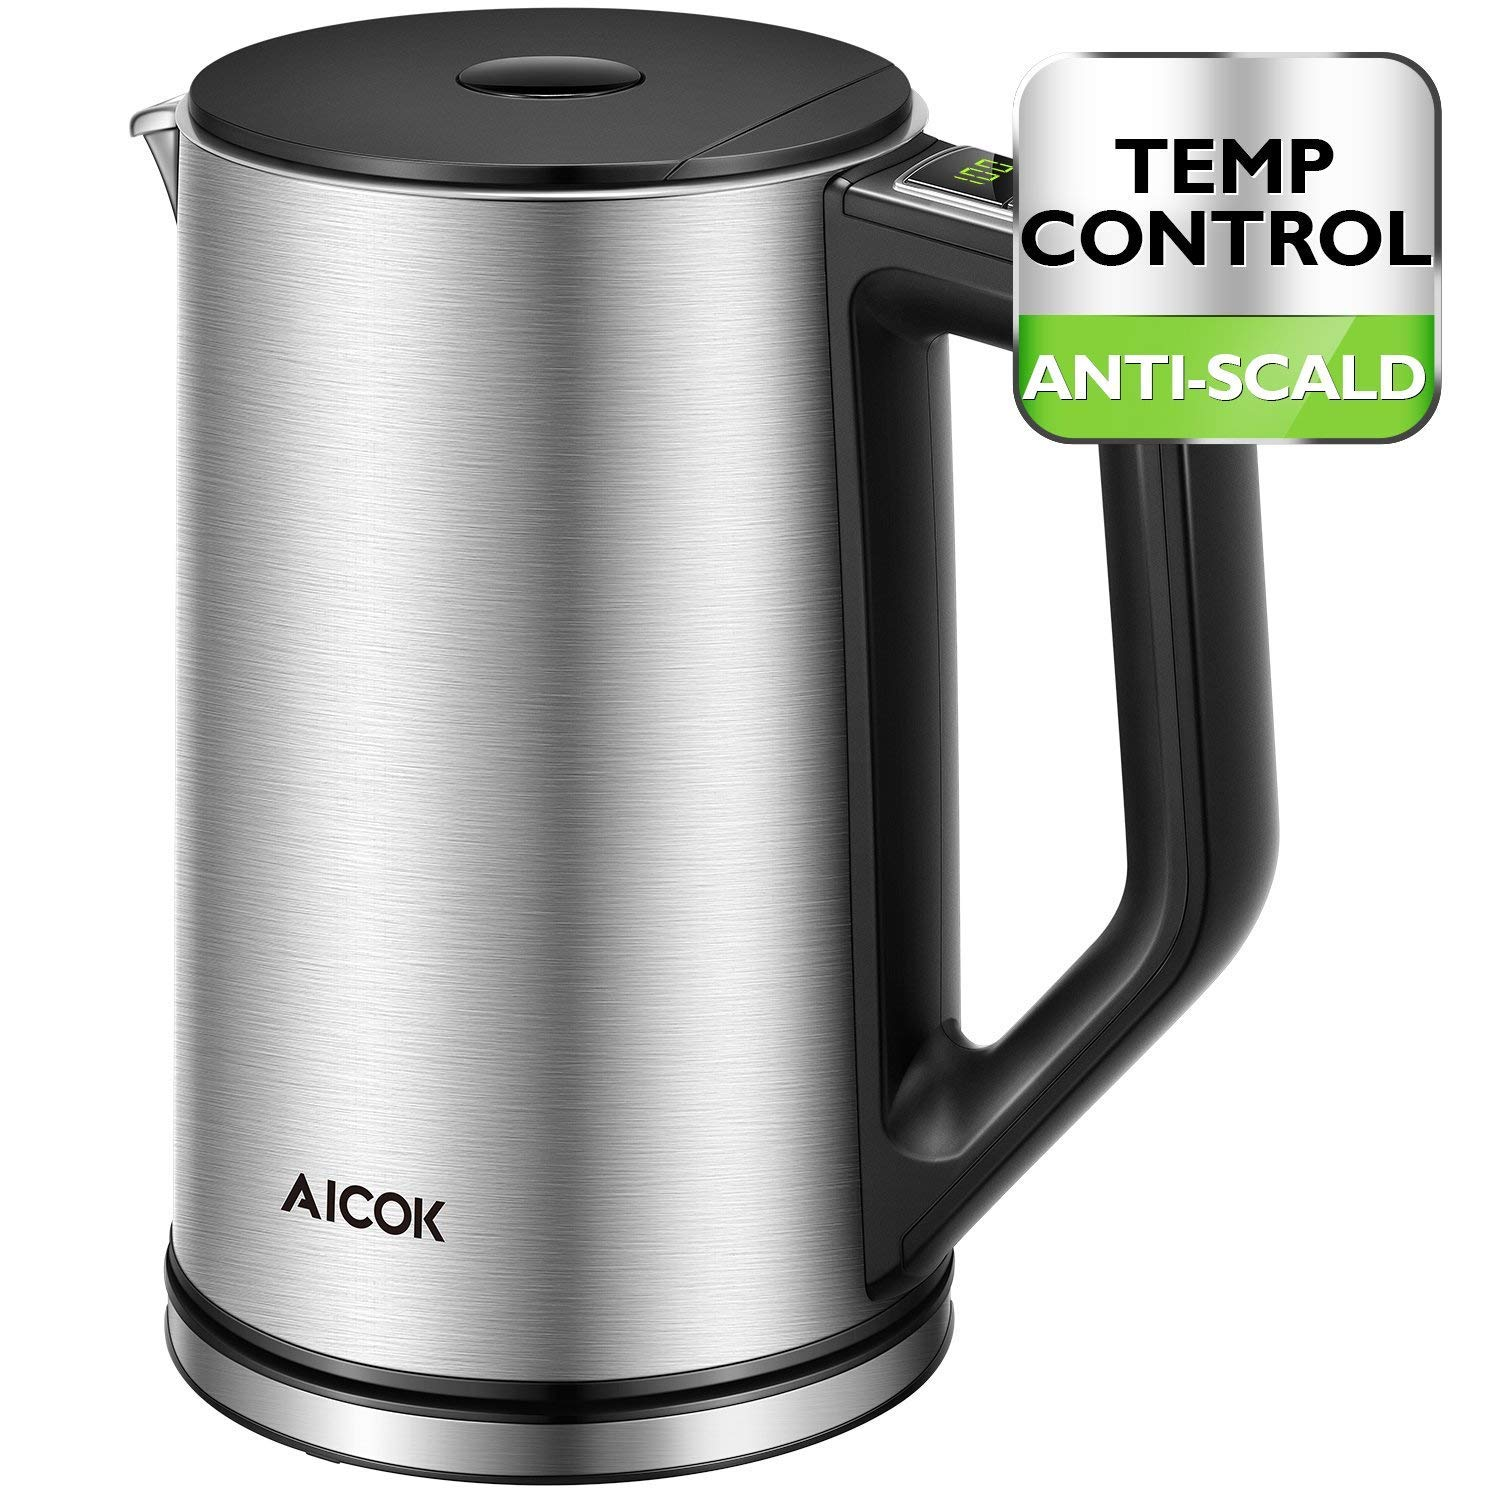 Aicok Electric Kettle Temperature Control, Double Wall Cool Touch Stainless Steel Water Kettle with LED Display from 90 ℉-212℉| BPA-Free | Strix Control | Keep Warm | Quick Boil | (1.5 L, 1500 W)